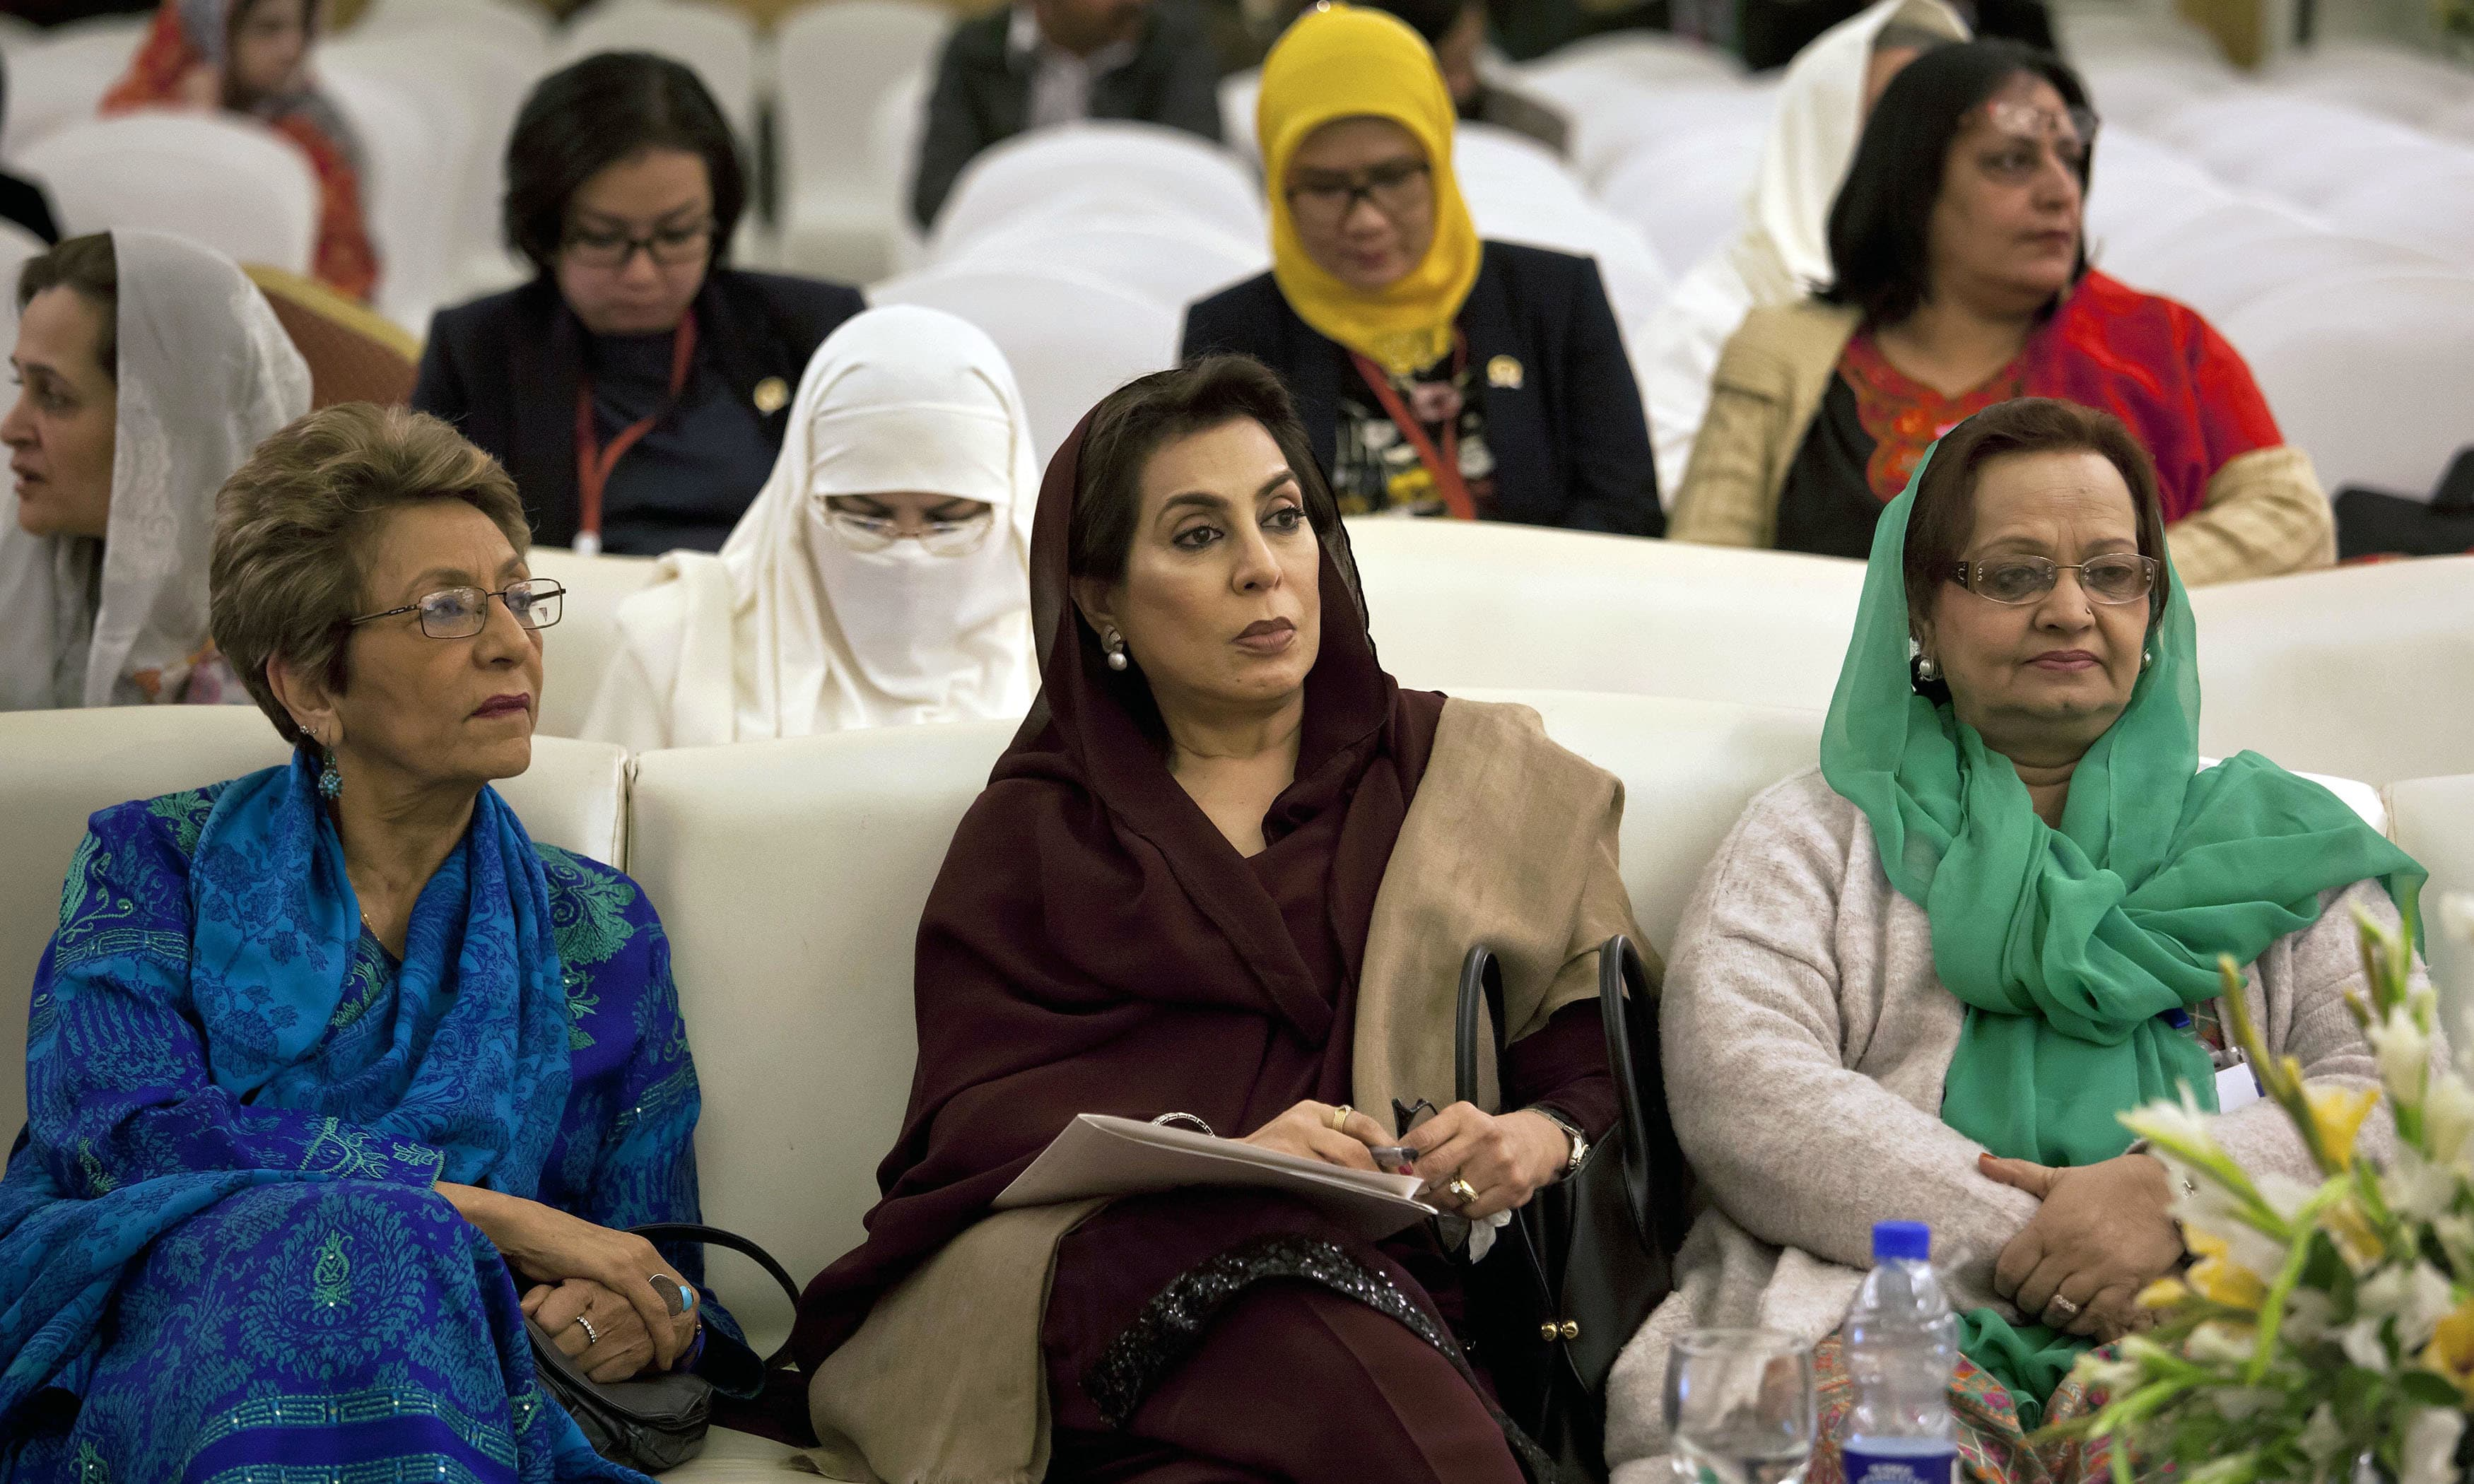 Women lawmakers Tahira Aurangzeb, Fahmida Mirza and other women attend an international women's conference in Islamabad. —AP